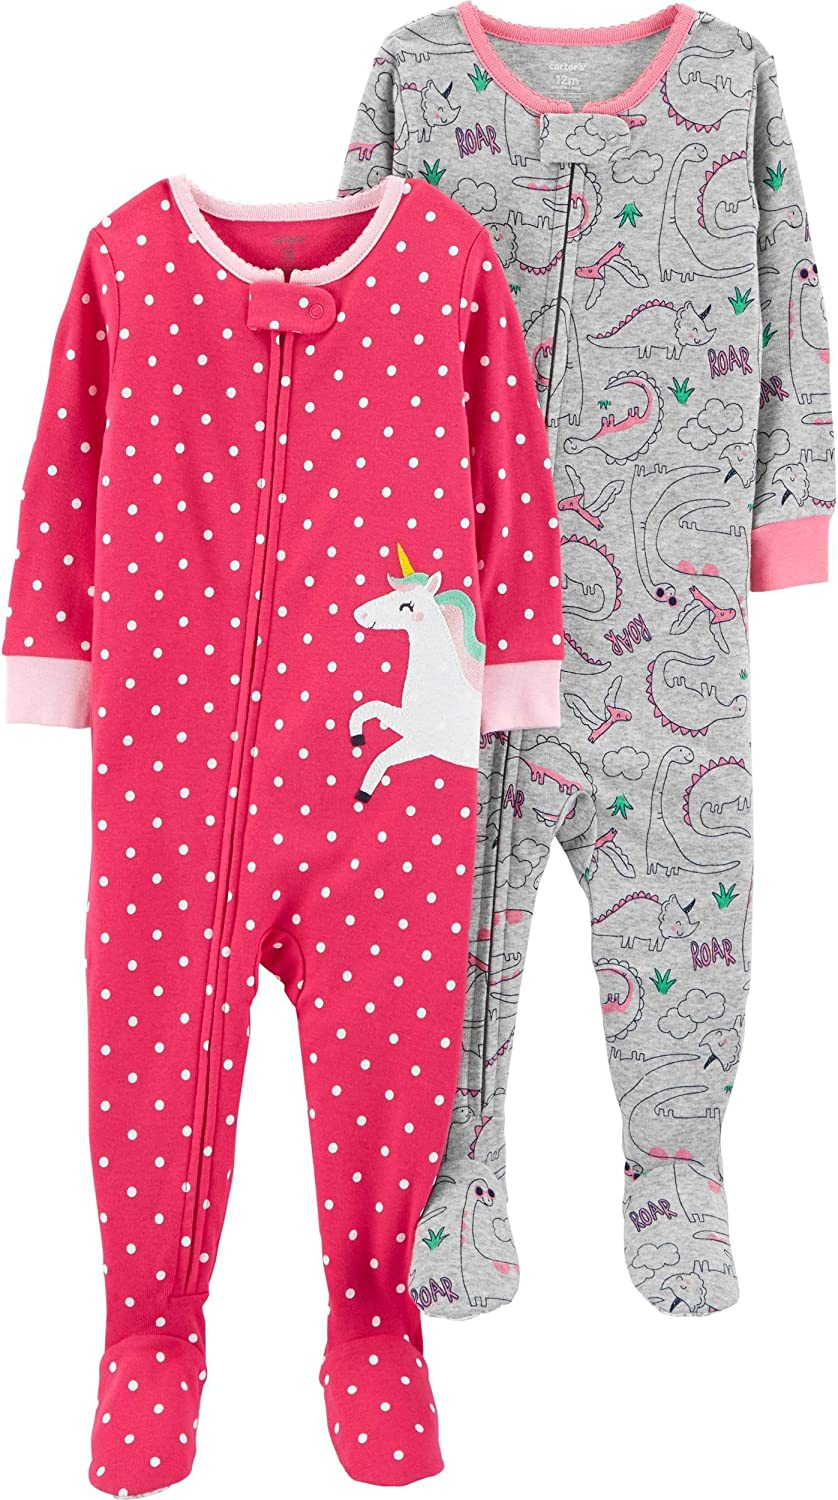 Carters Baby Girls 2-Pack Cotton Footed Pajamas